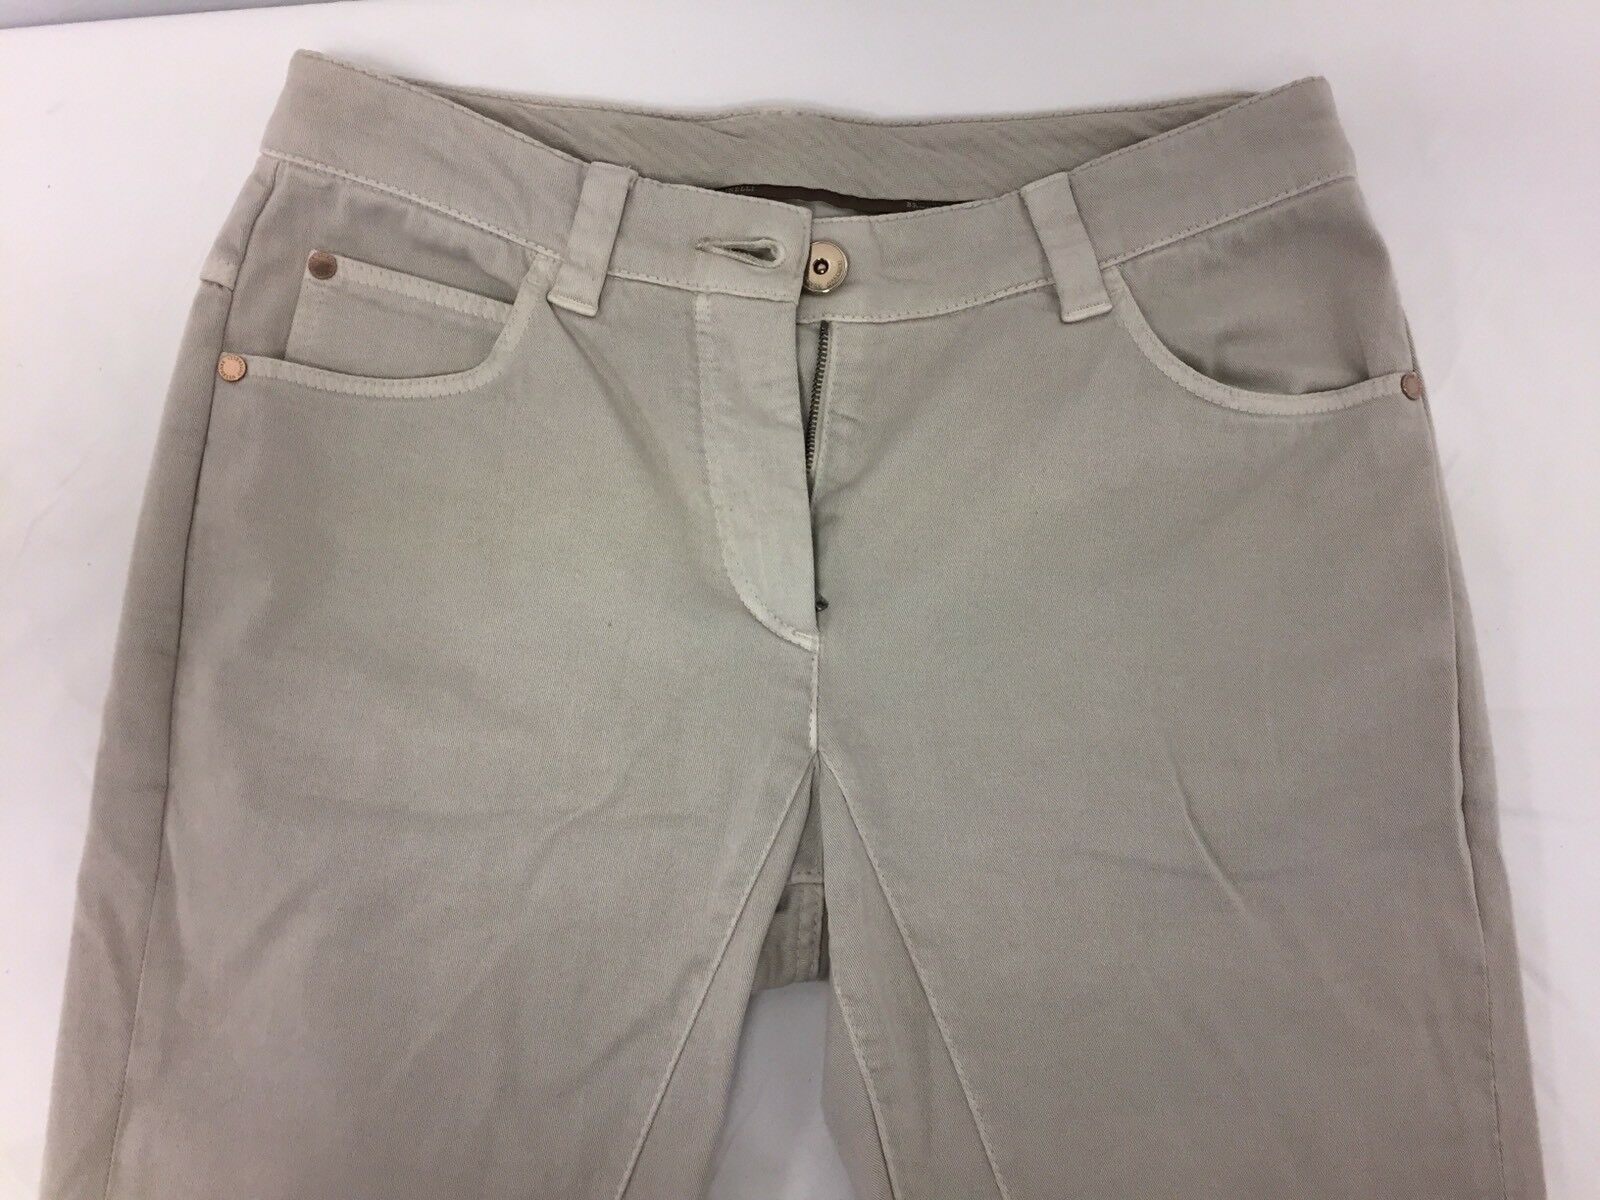 Brunello Cucinelli Regular & Tapered Medium Rise Cotton Blend Jeans Size 2US